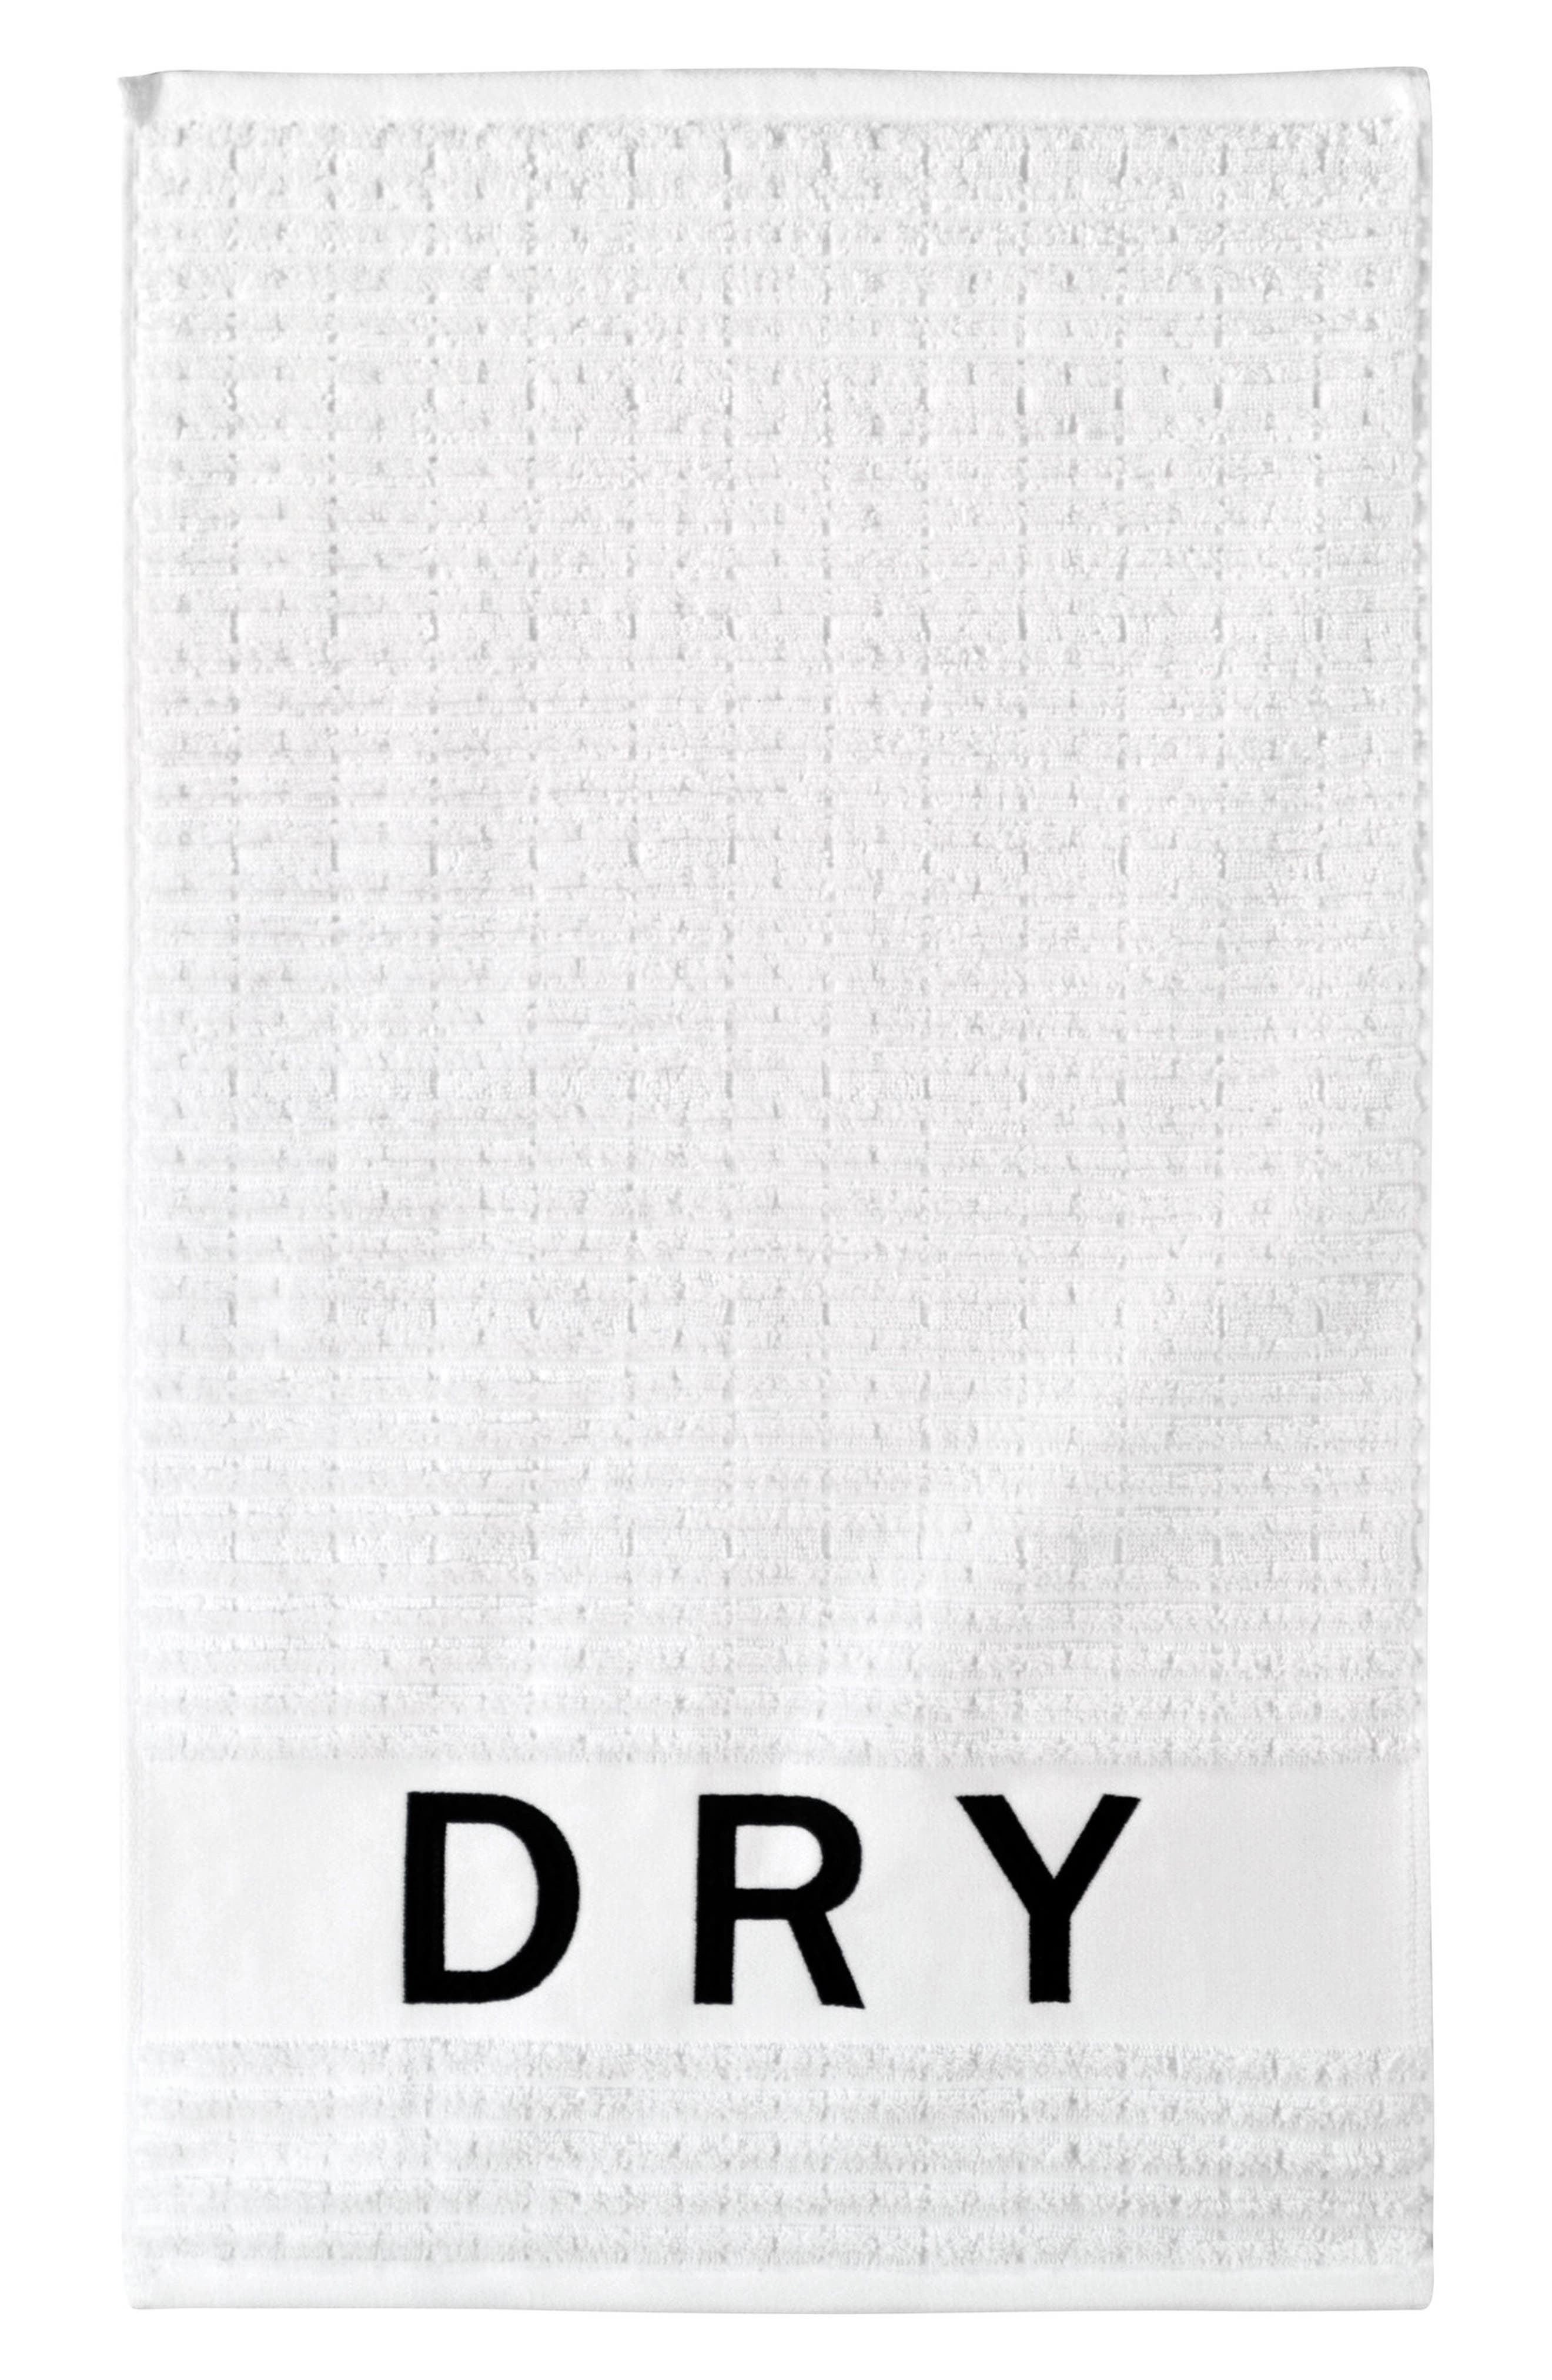 DKNY Chatter Hand Towel